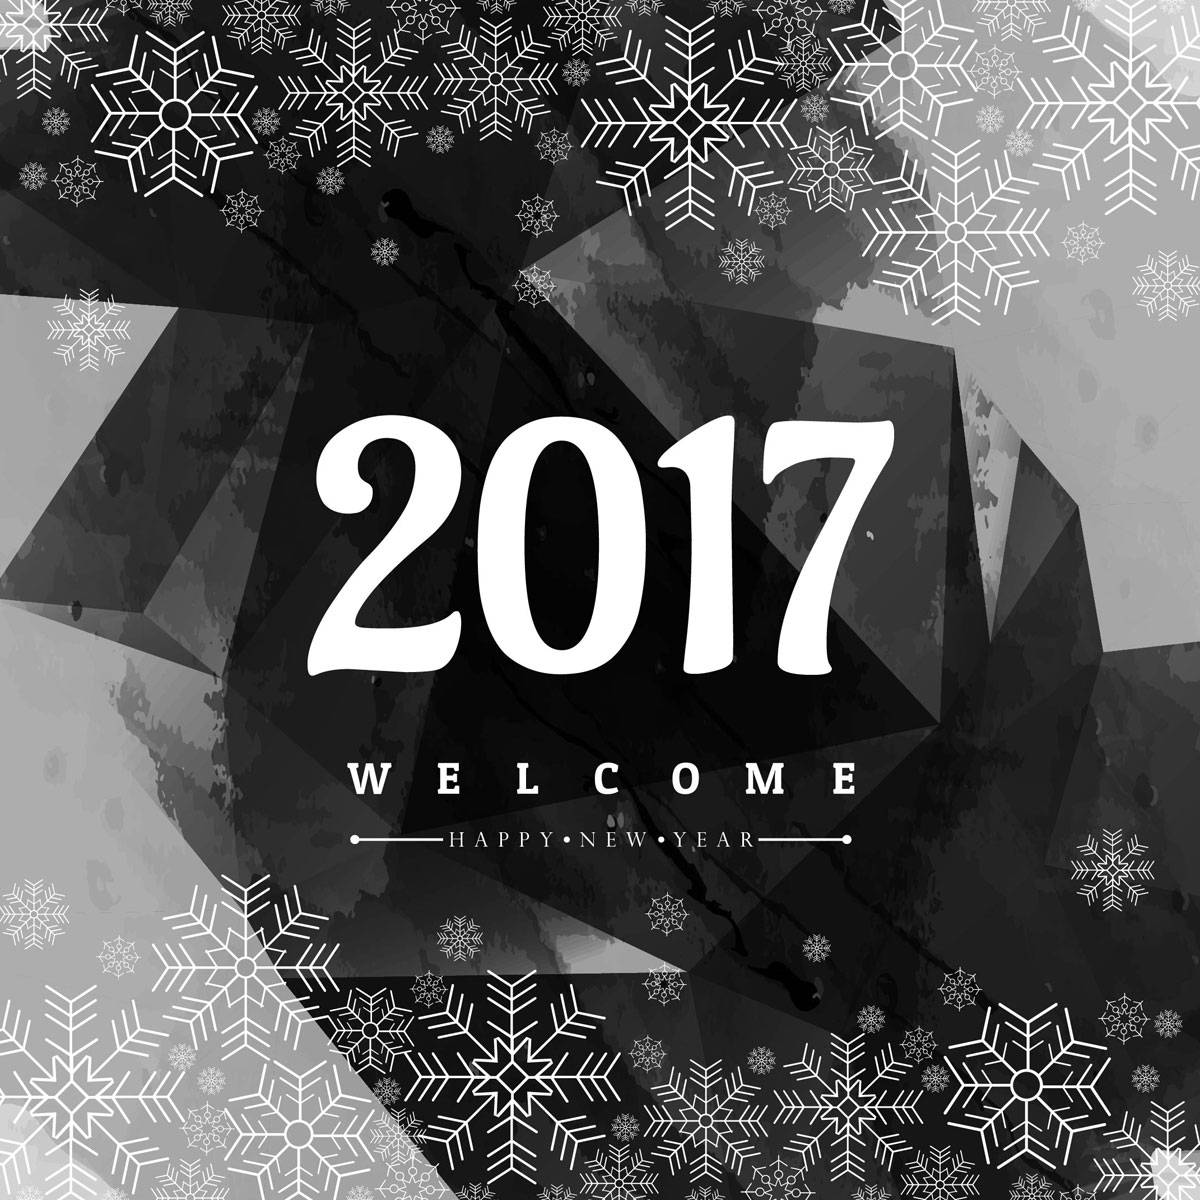 Top 100 Download Happy New Year Images 2017 In Full Hd